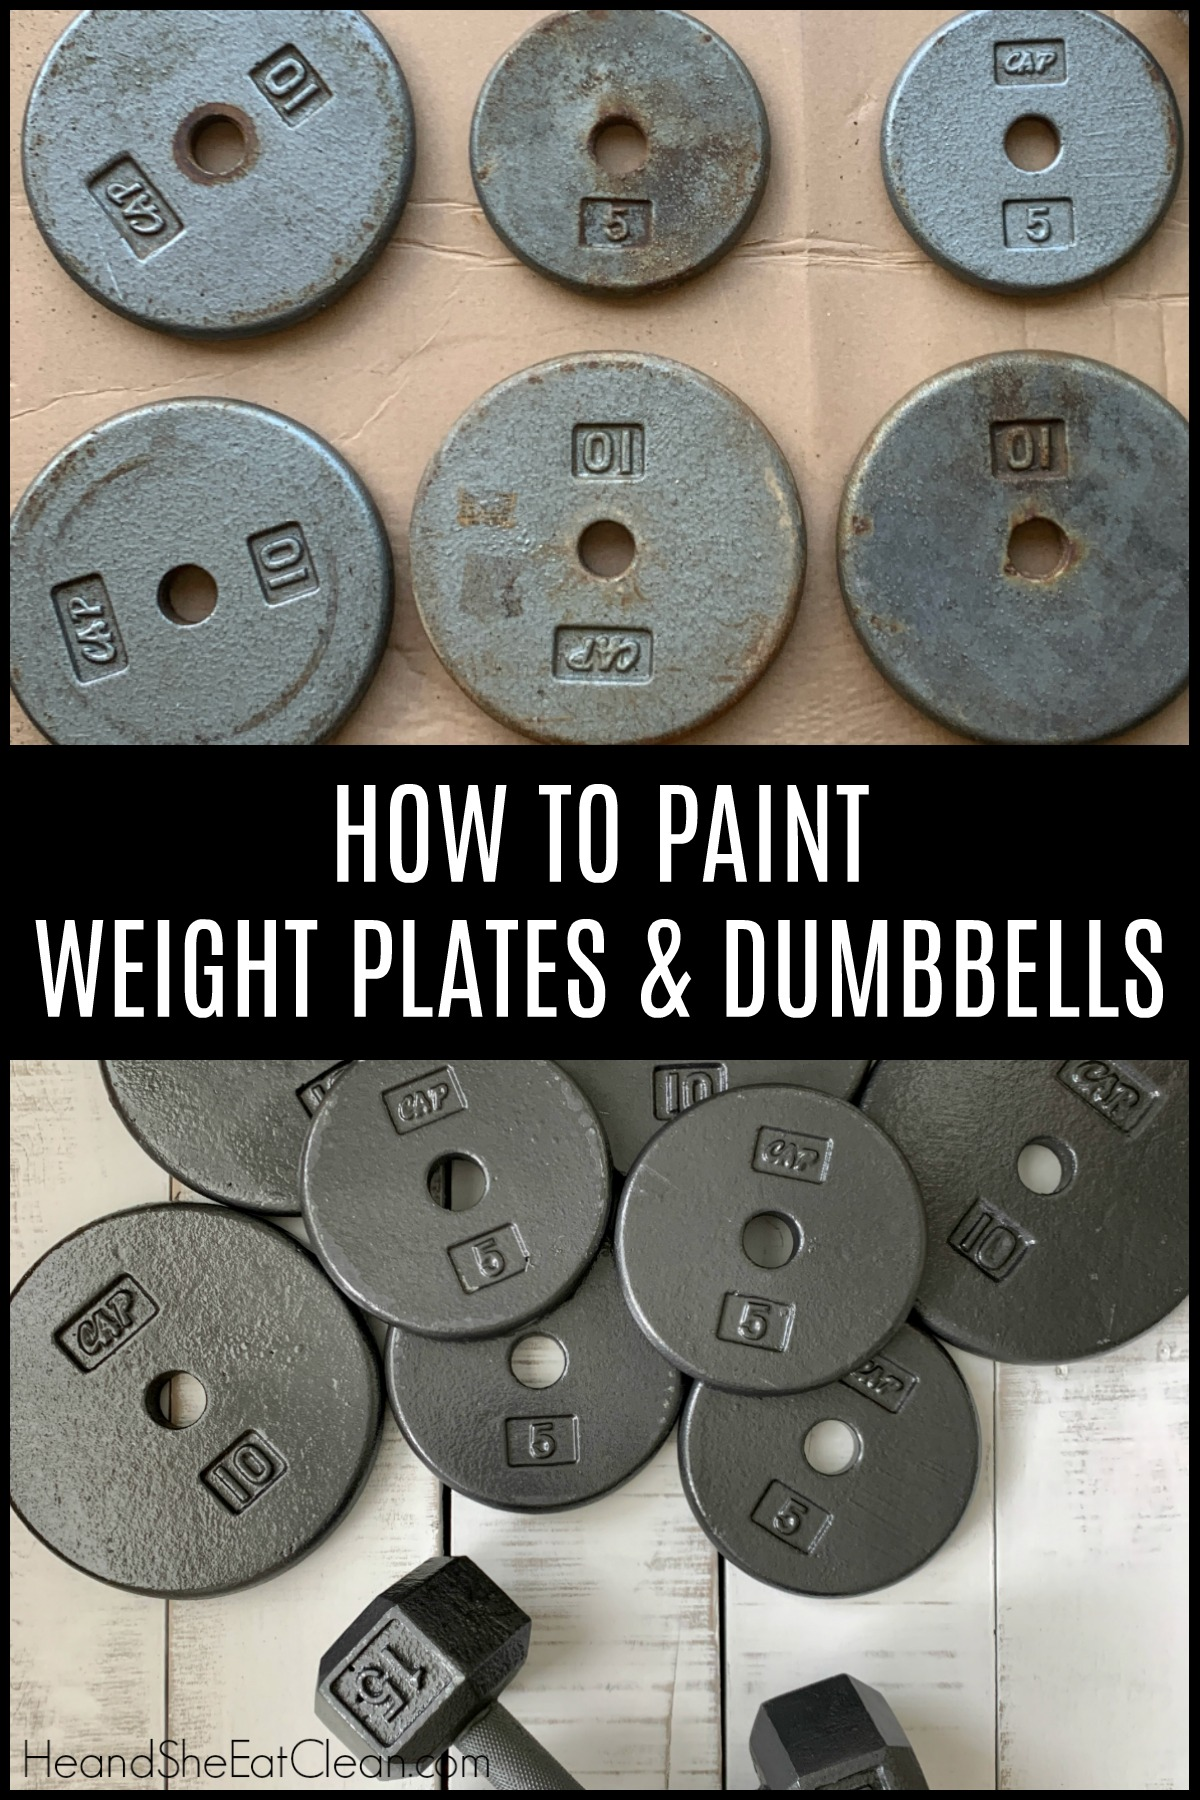 before and after picture of old rusty weight plates (before) and newly painted plates (after) with text that reads how to paint weight plates & dumbbells